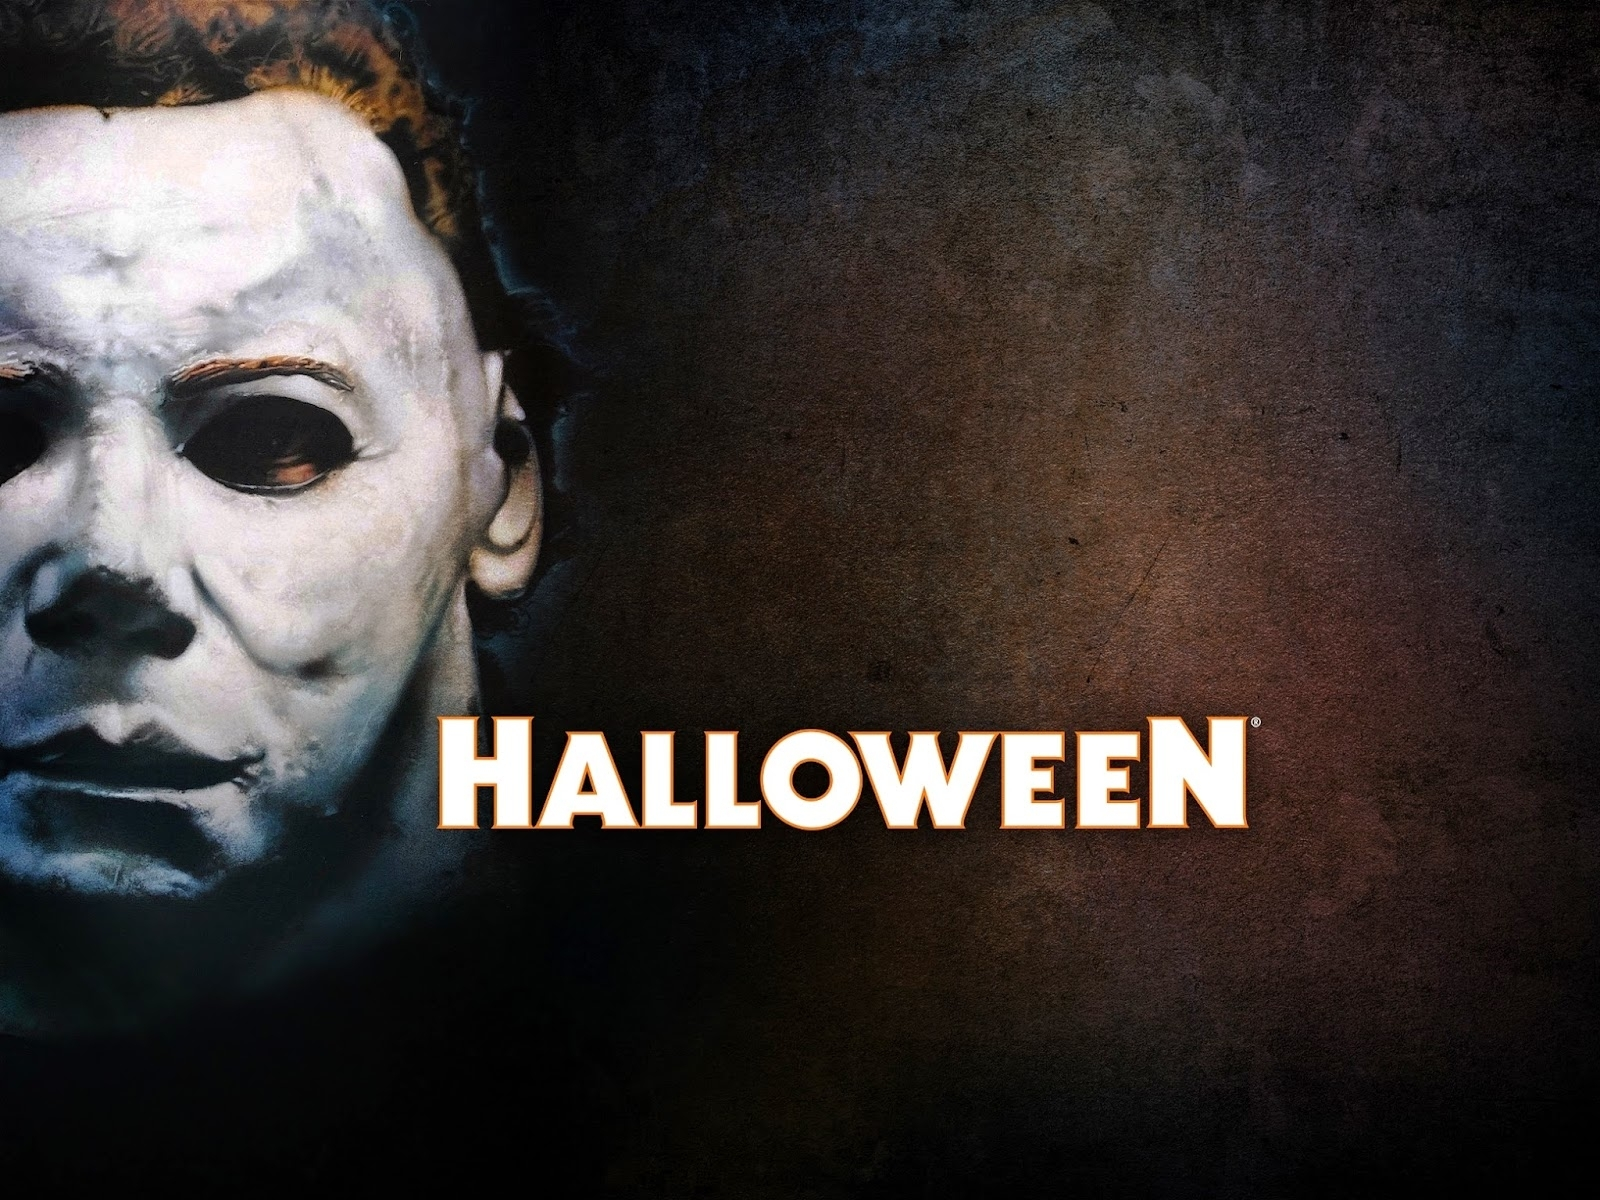 paranormal pop culture: michael myers comes home to universal